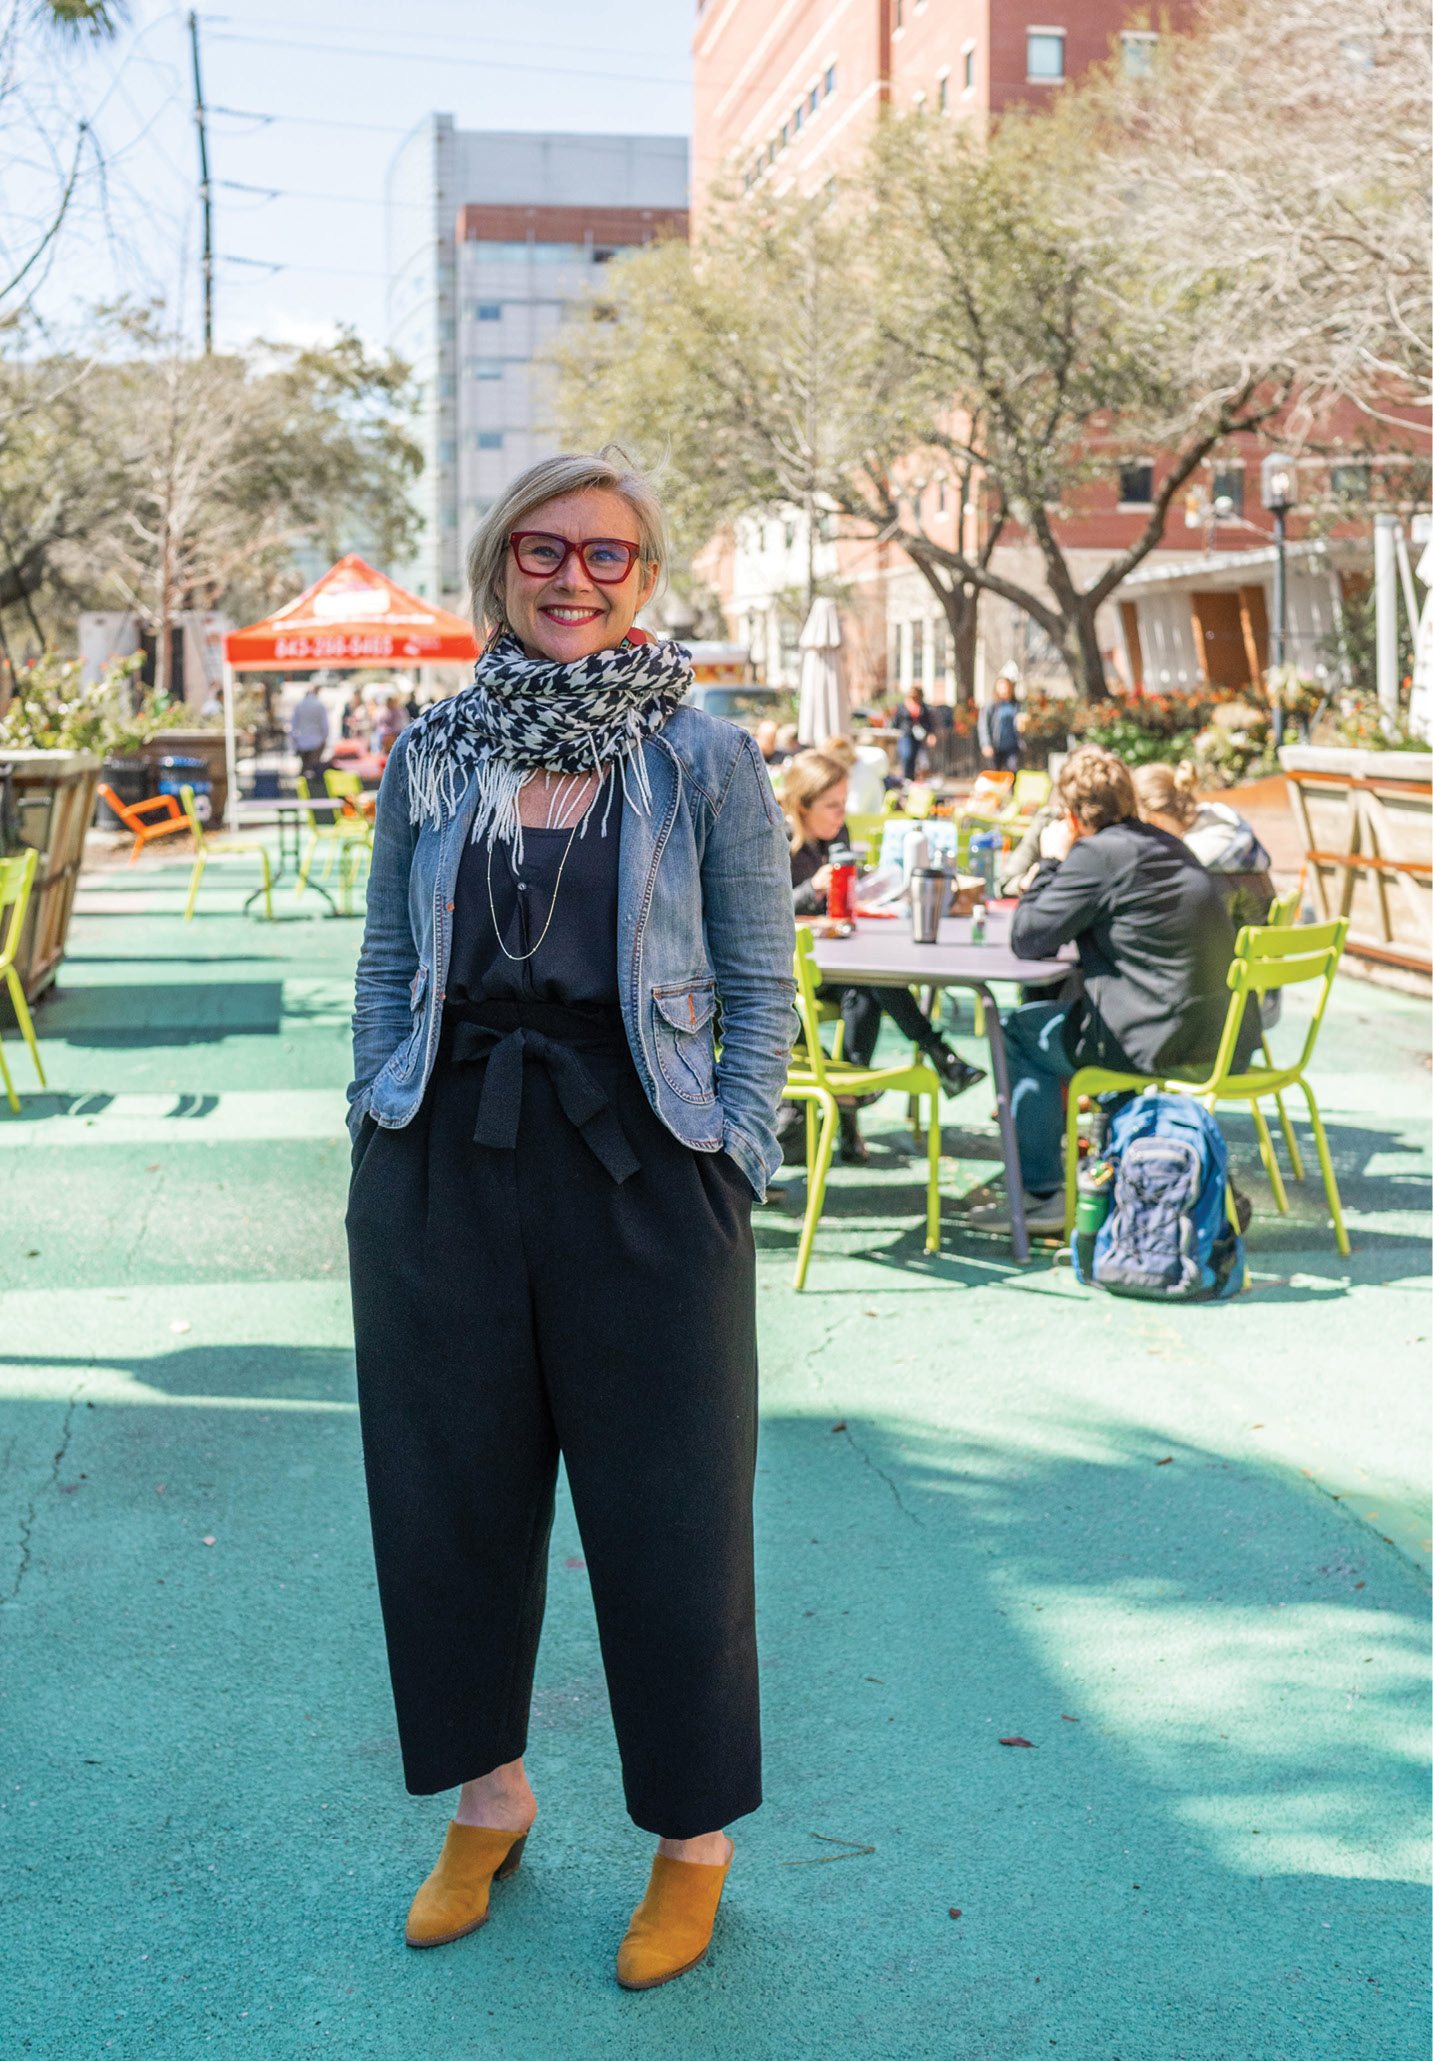 """Livability is shaped by what happens in the public realm,"" says the director of the Urban Land Institute's South Carolina chapter, Amy Barrett, shown here at the pedestrian mall on MUSC's campus, public space reclaimed from a street closed to car traffic."